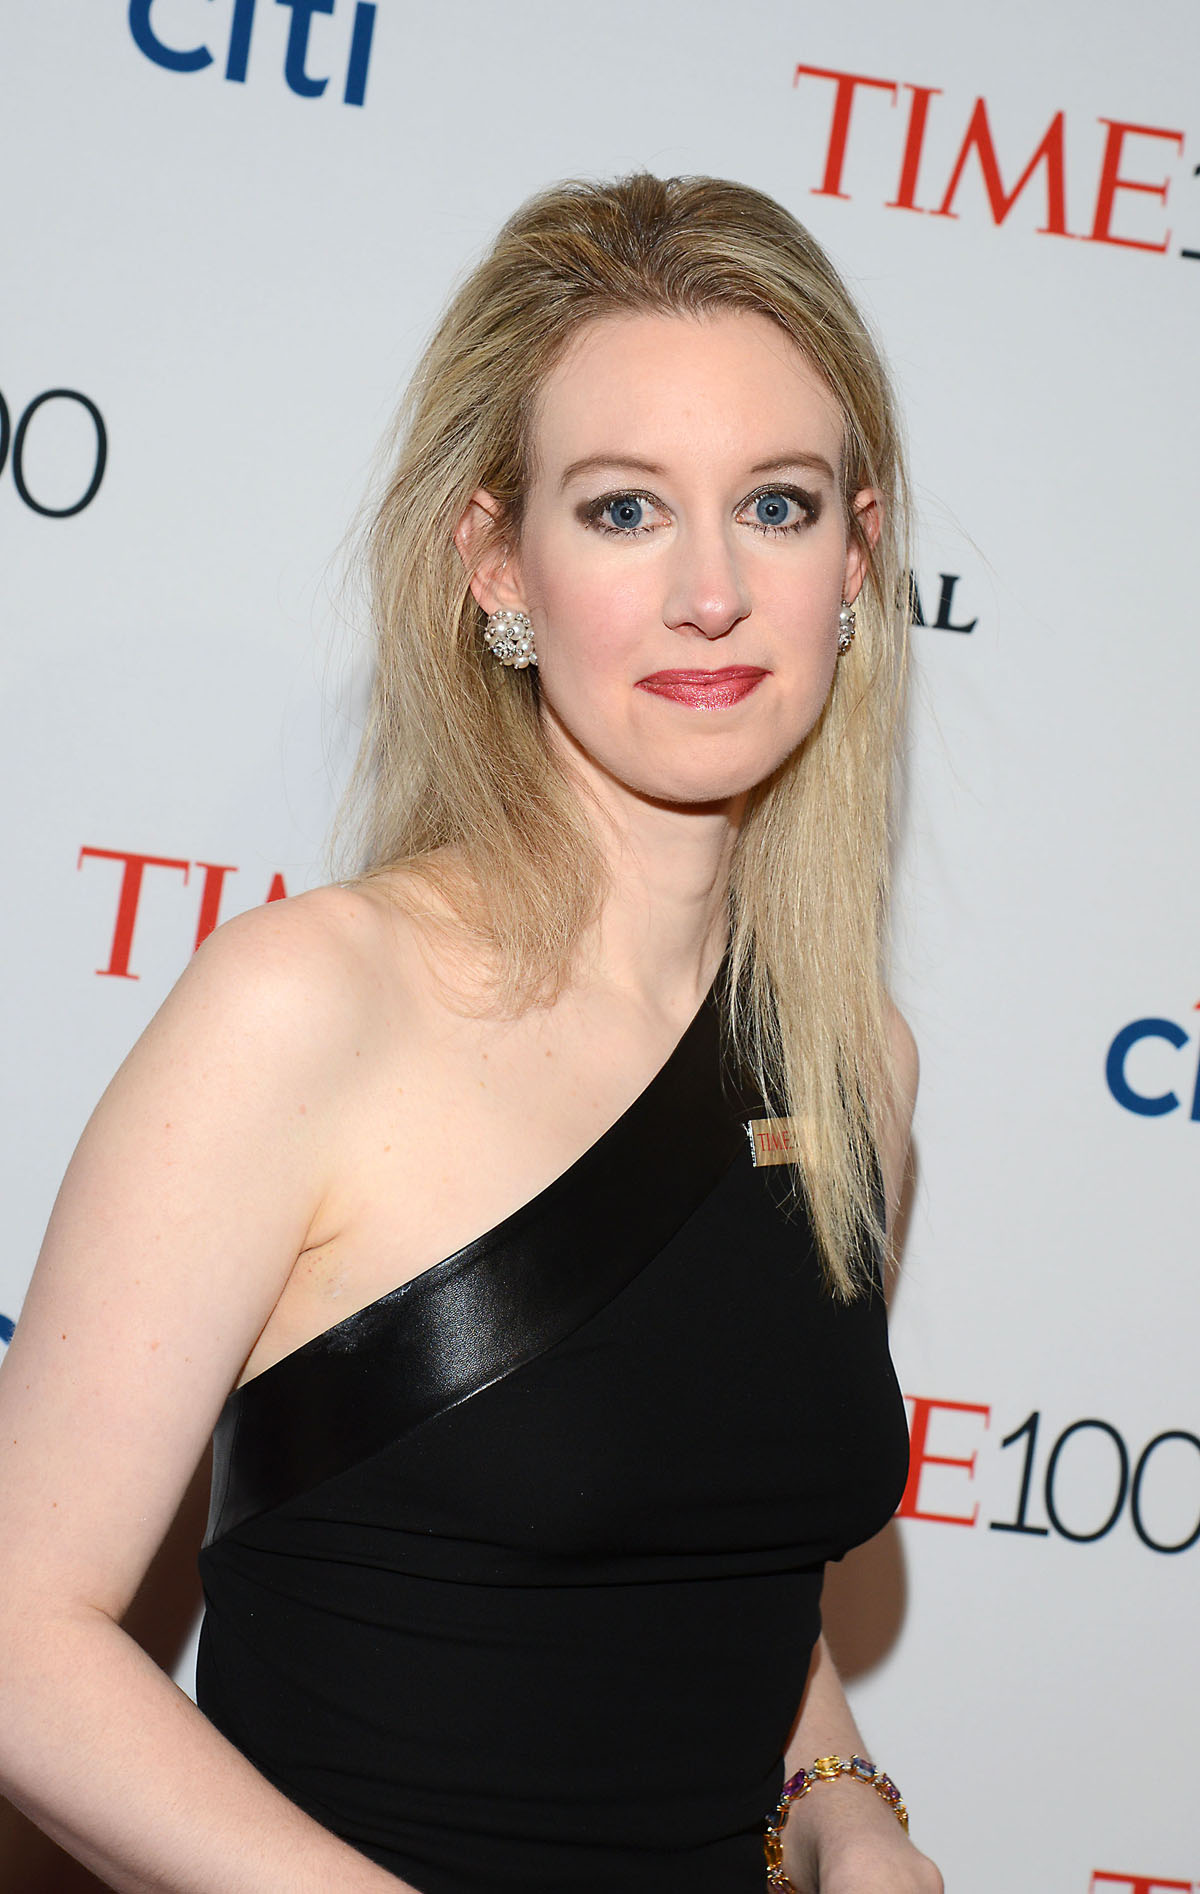 Elizabeth Holmes attends the TIME 100 Is..........